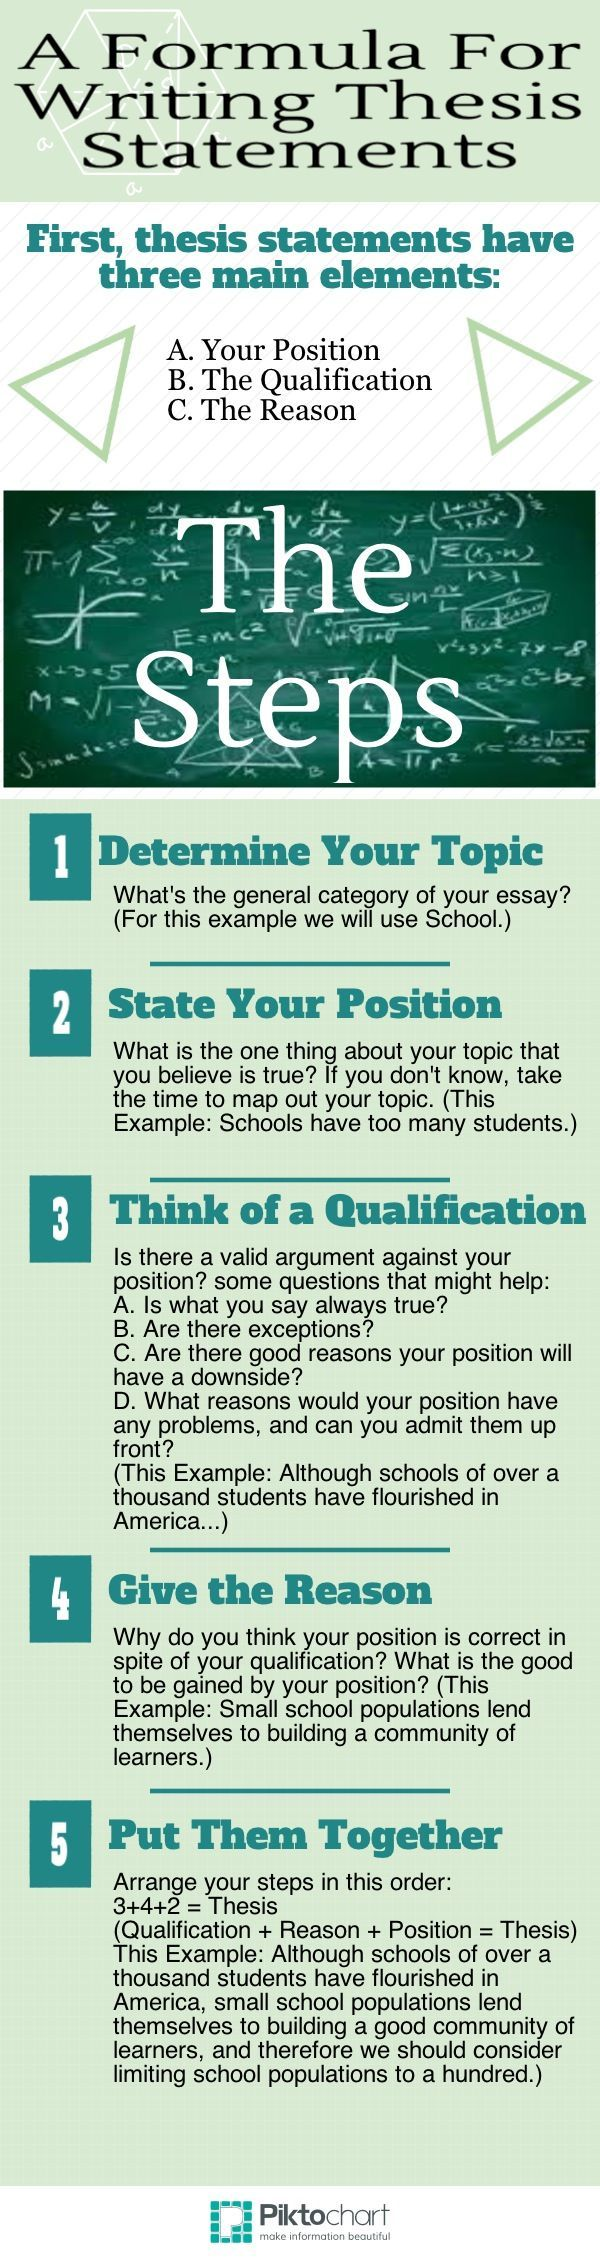 Thesis Statements  Piktochart Infographic Studying Tips Study  Thesis Statement Formula  Use This Formula To Write A Strong Thesis